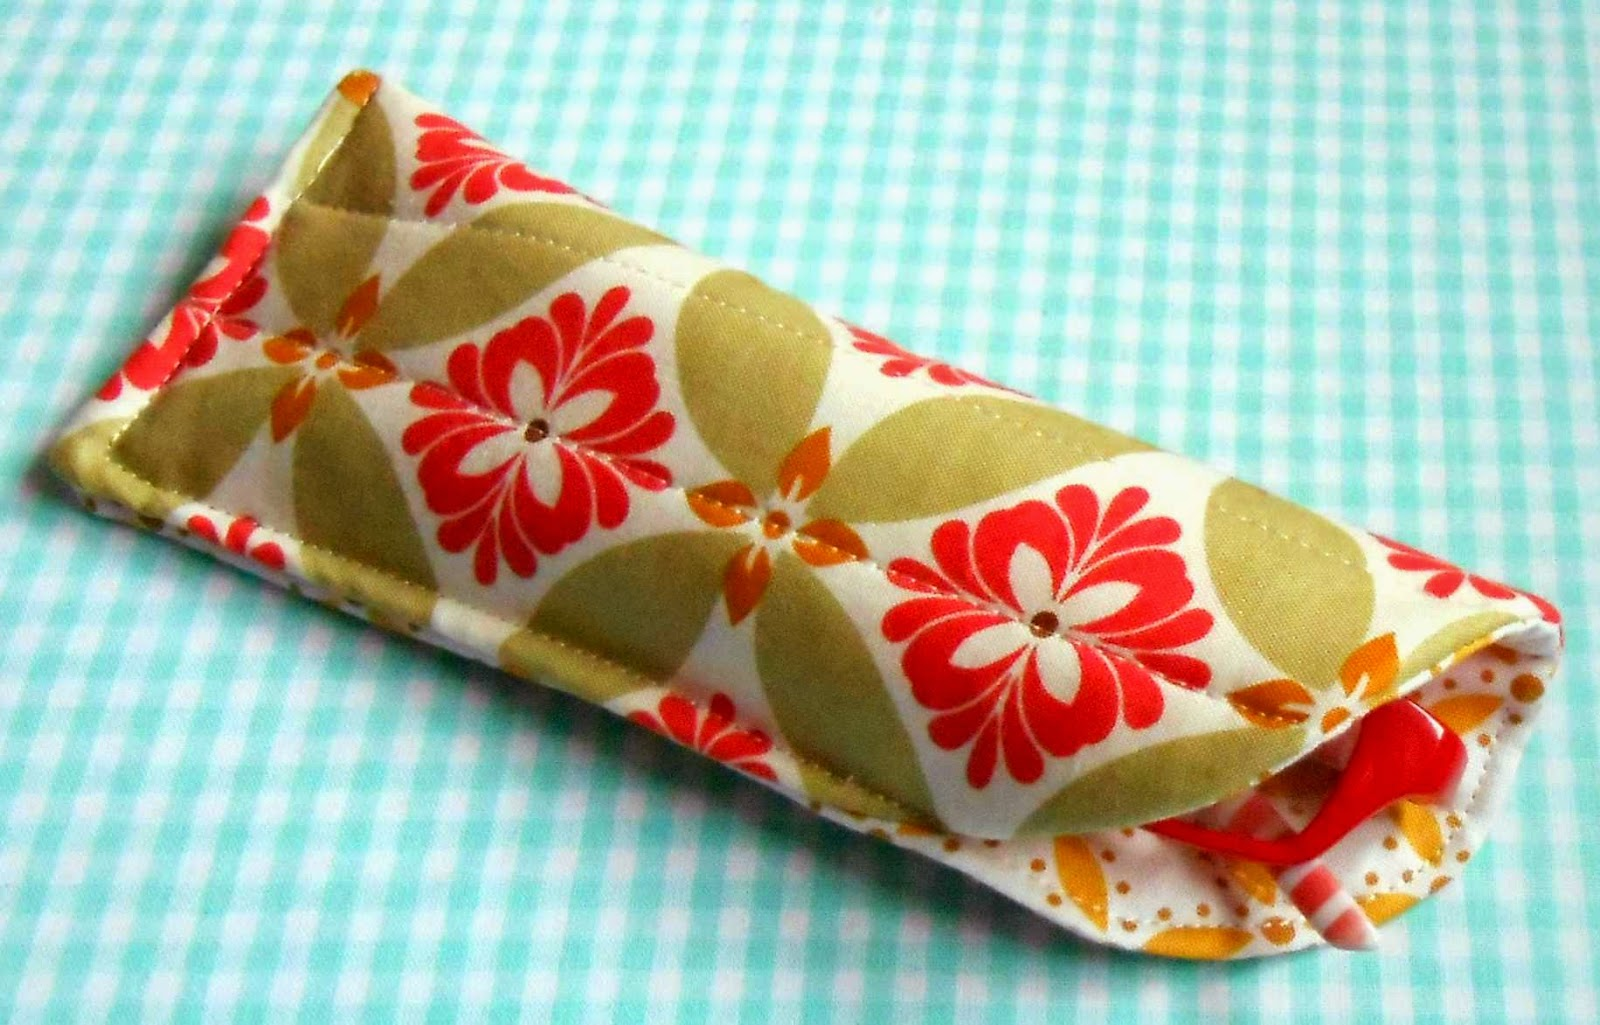 http://www.craftsy.com/project/view/easy-peasy-glasses-case/186389